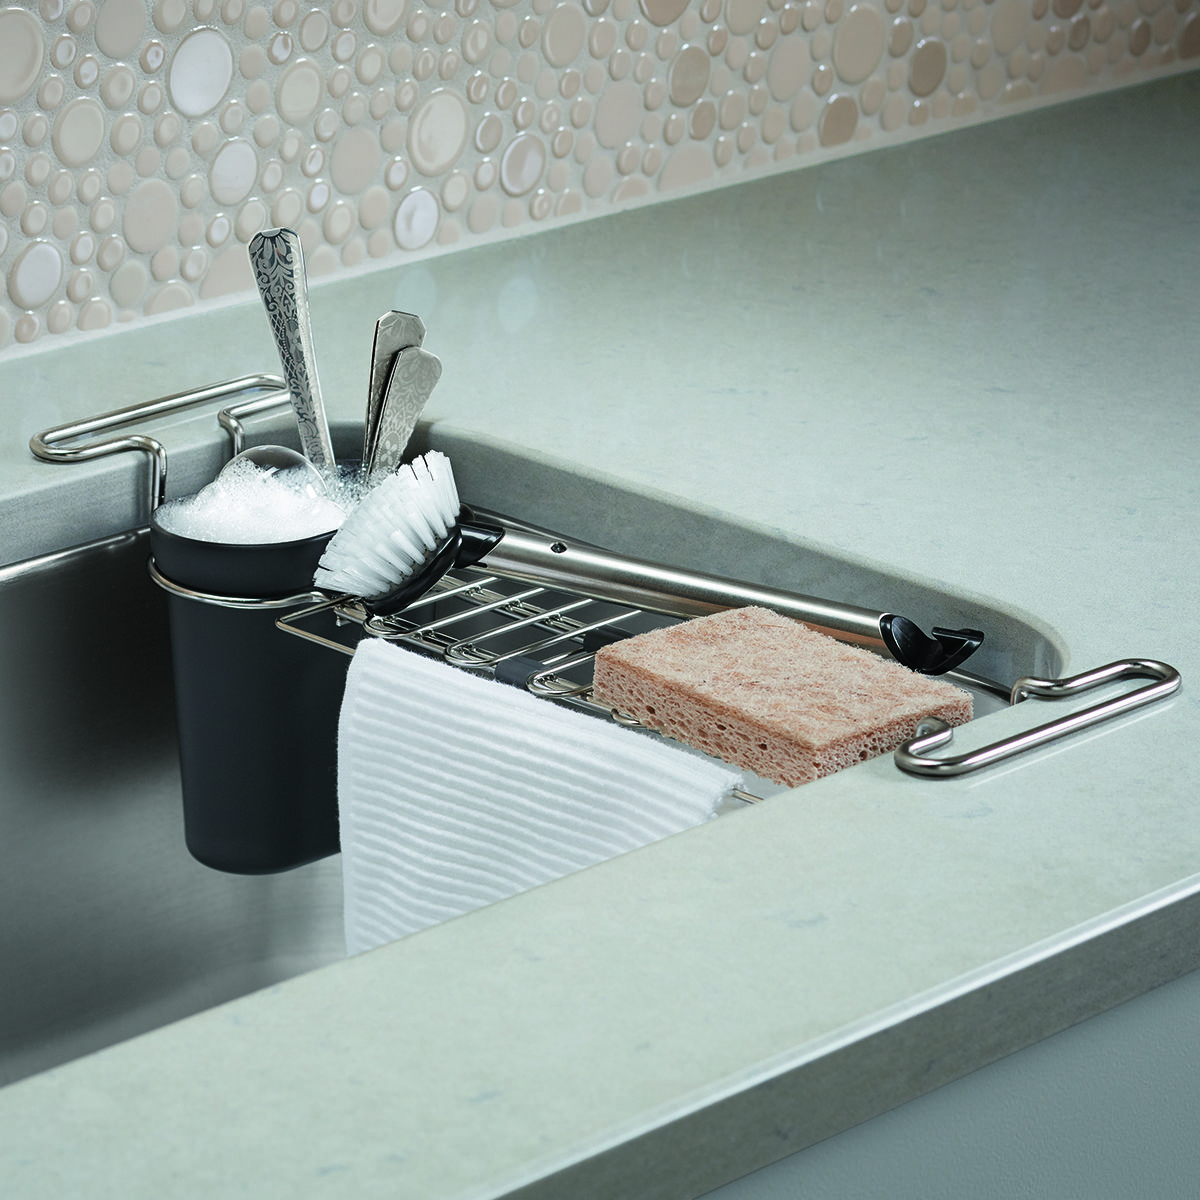 Our expandable Kohler Chrome Kitchen Sink Utility Rack is